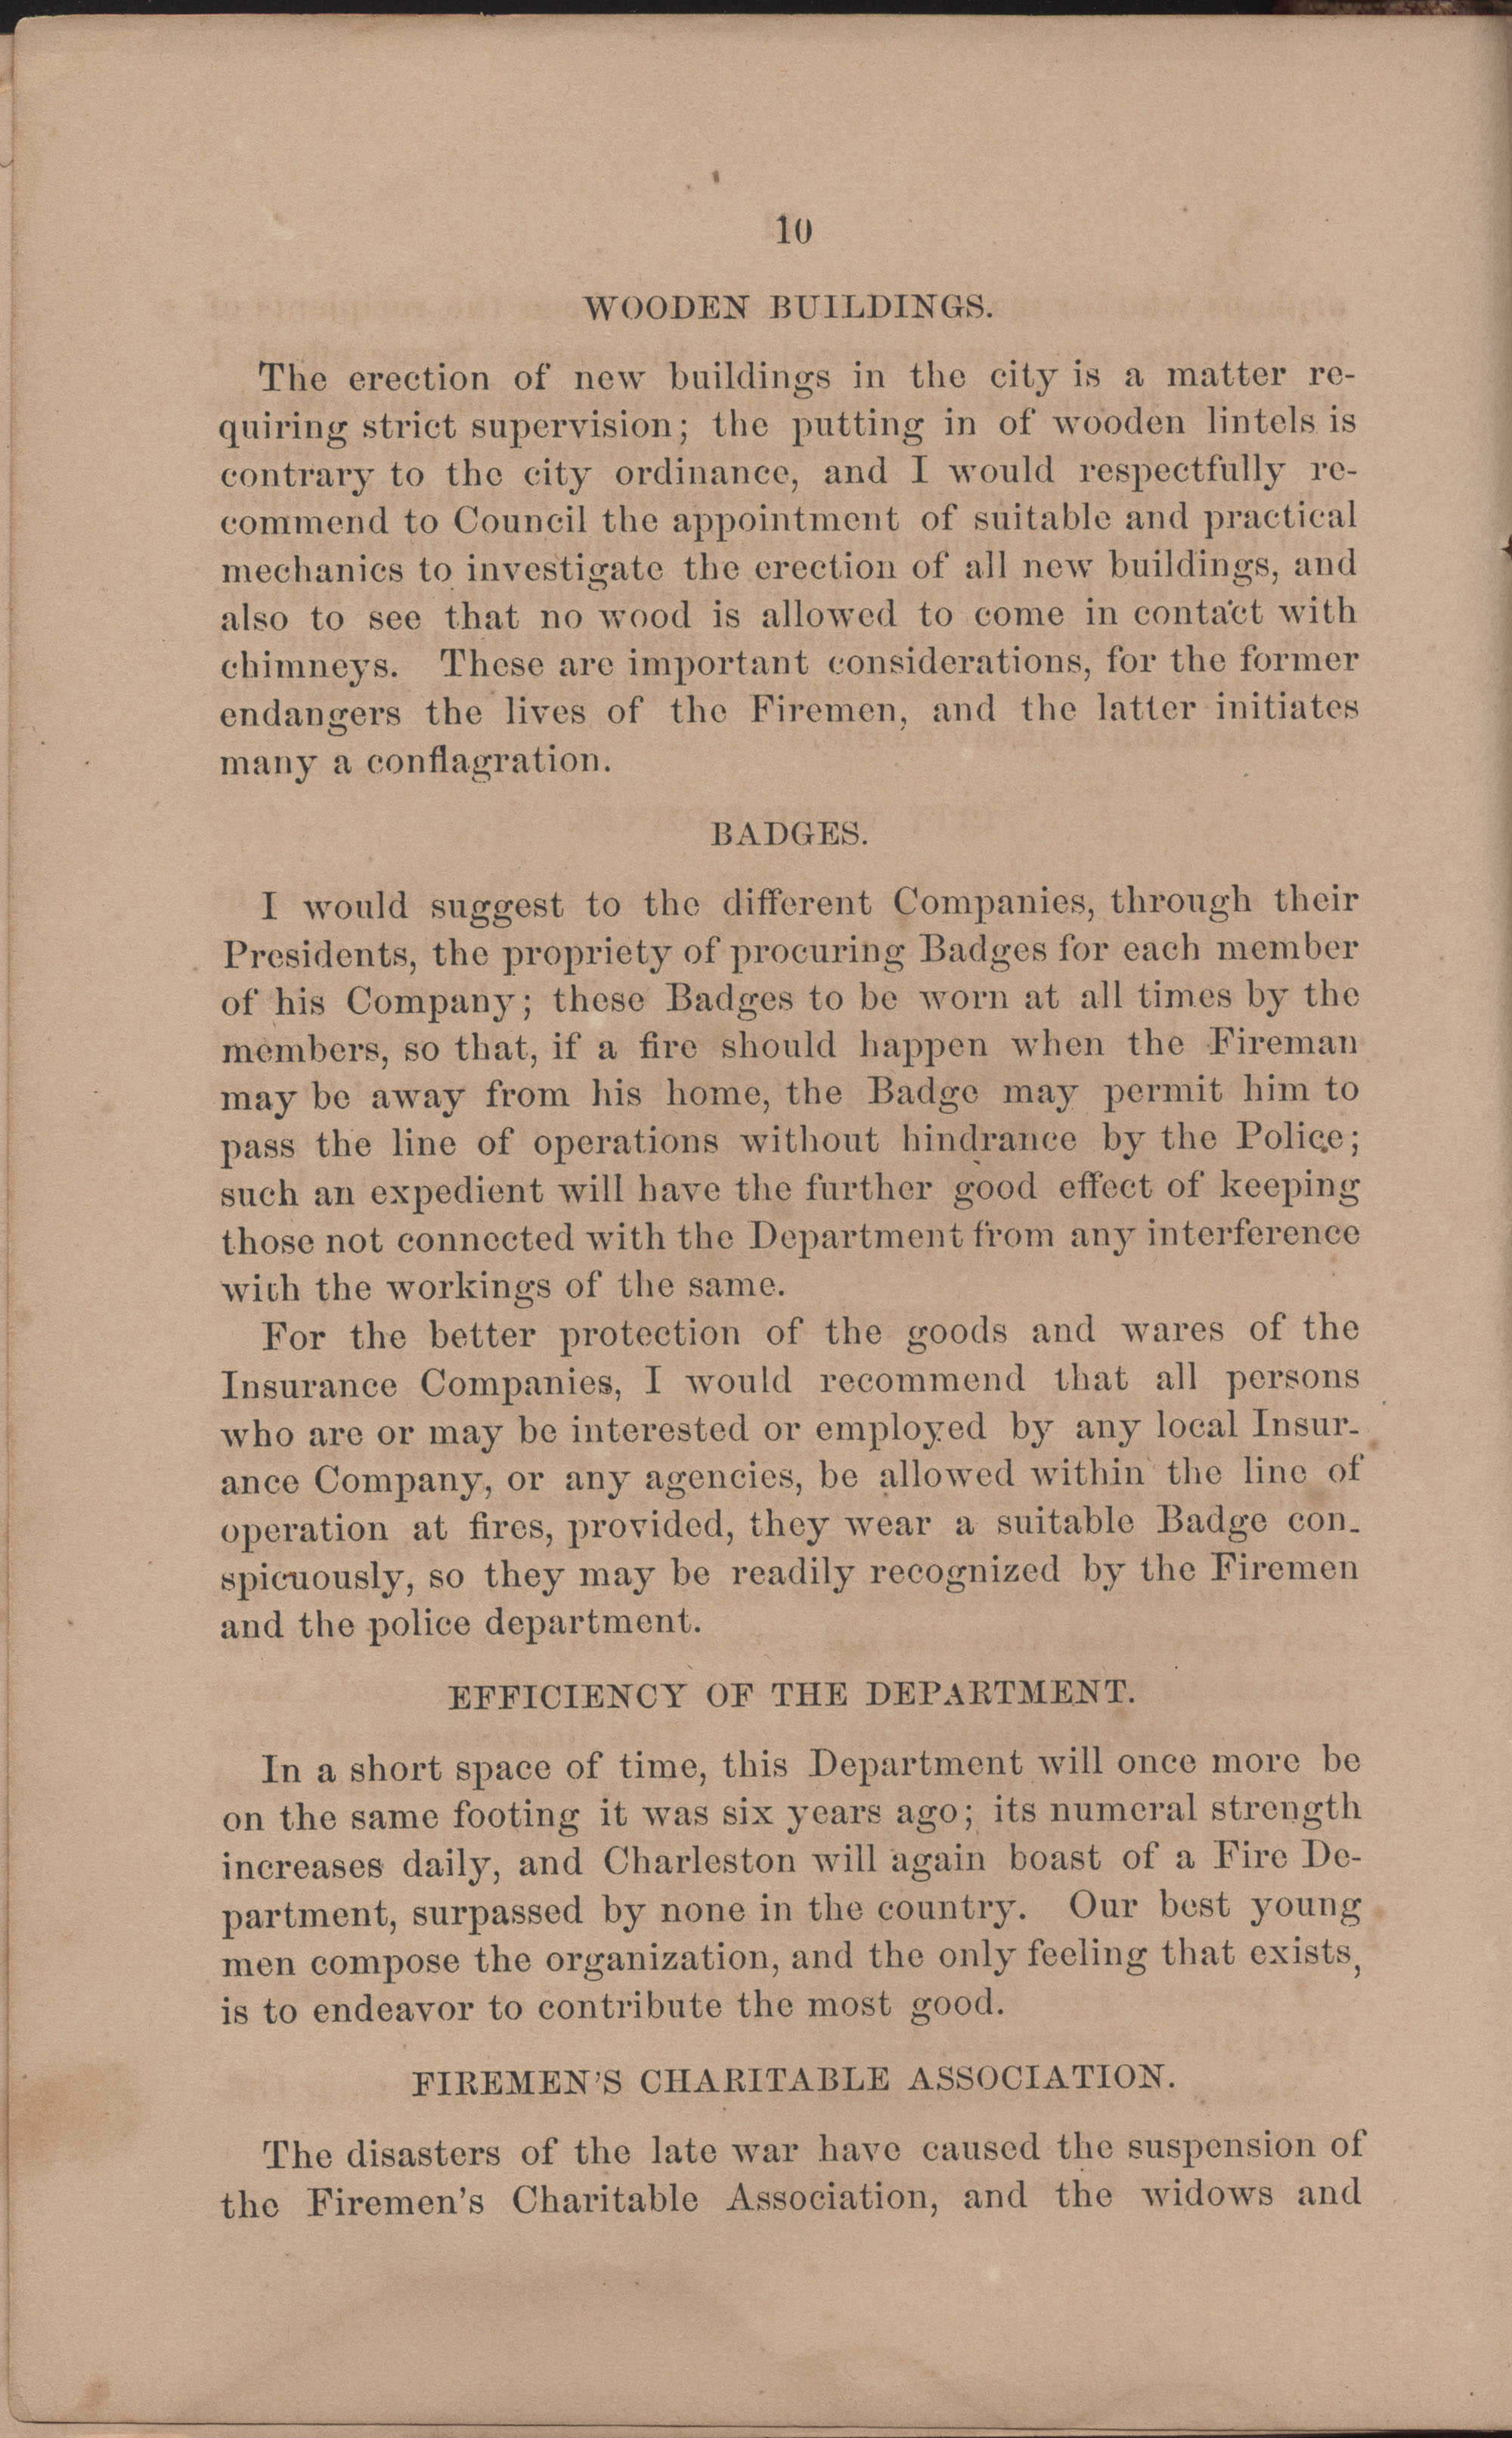 Annual Report of the Chief of the Fire Department of the City of Charleston, page 106